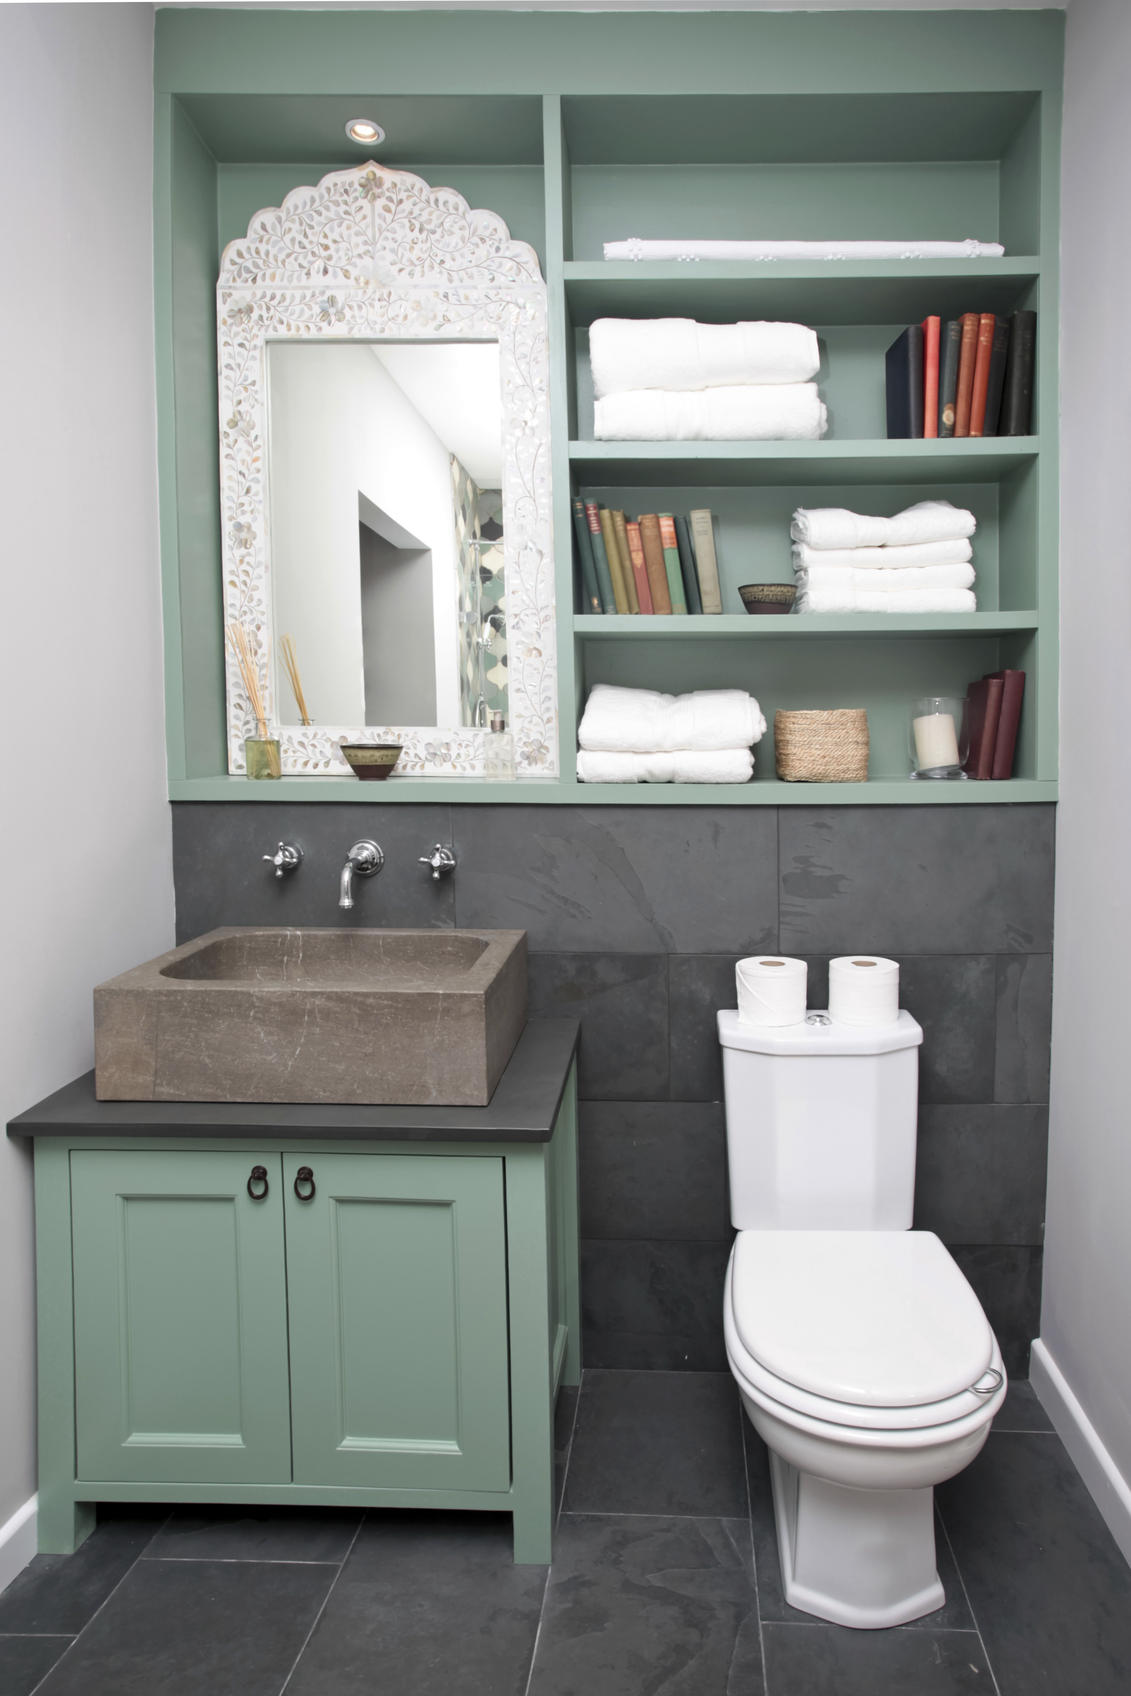 Tips to maximizing your bathroom space tlcme tlc - Maximizing space in a small bathroom collection ...